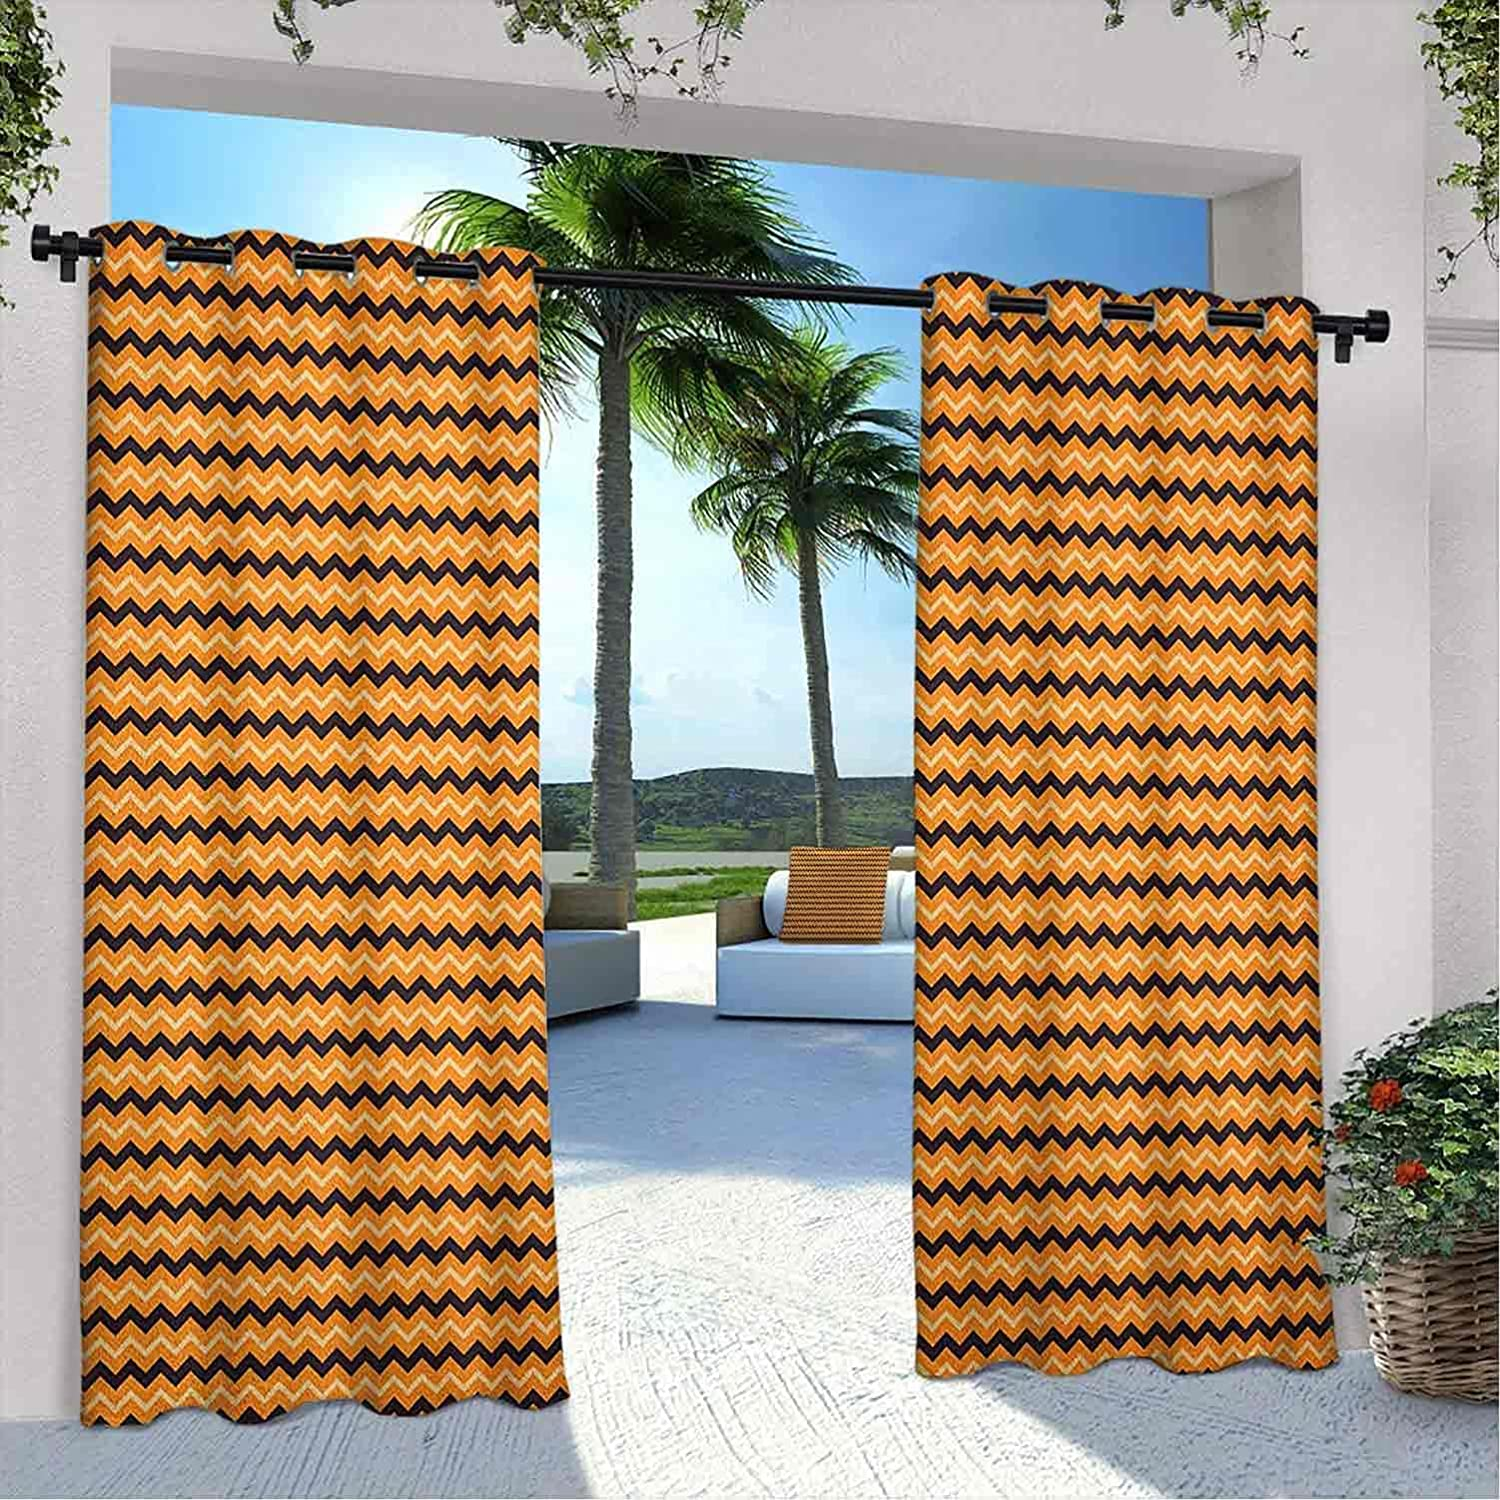 Printed Outdoor Stripes Curtain Chevron Zigzags Pattern Quality inspection Wa with Max 86% OFF